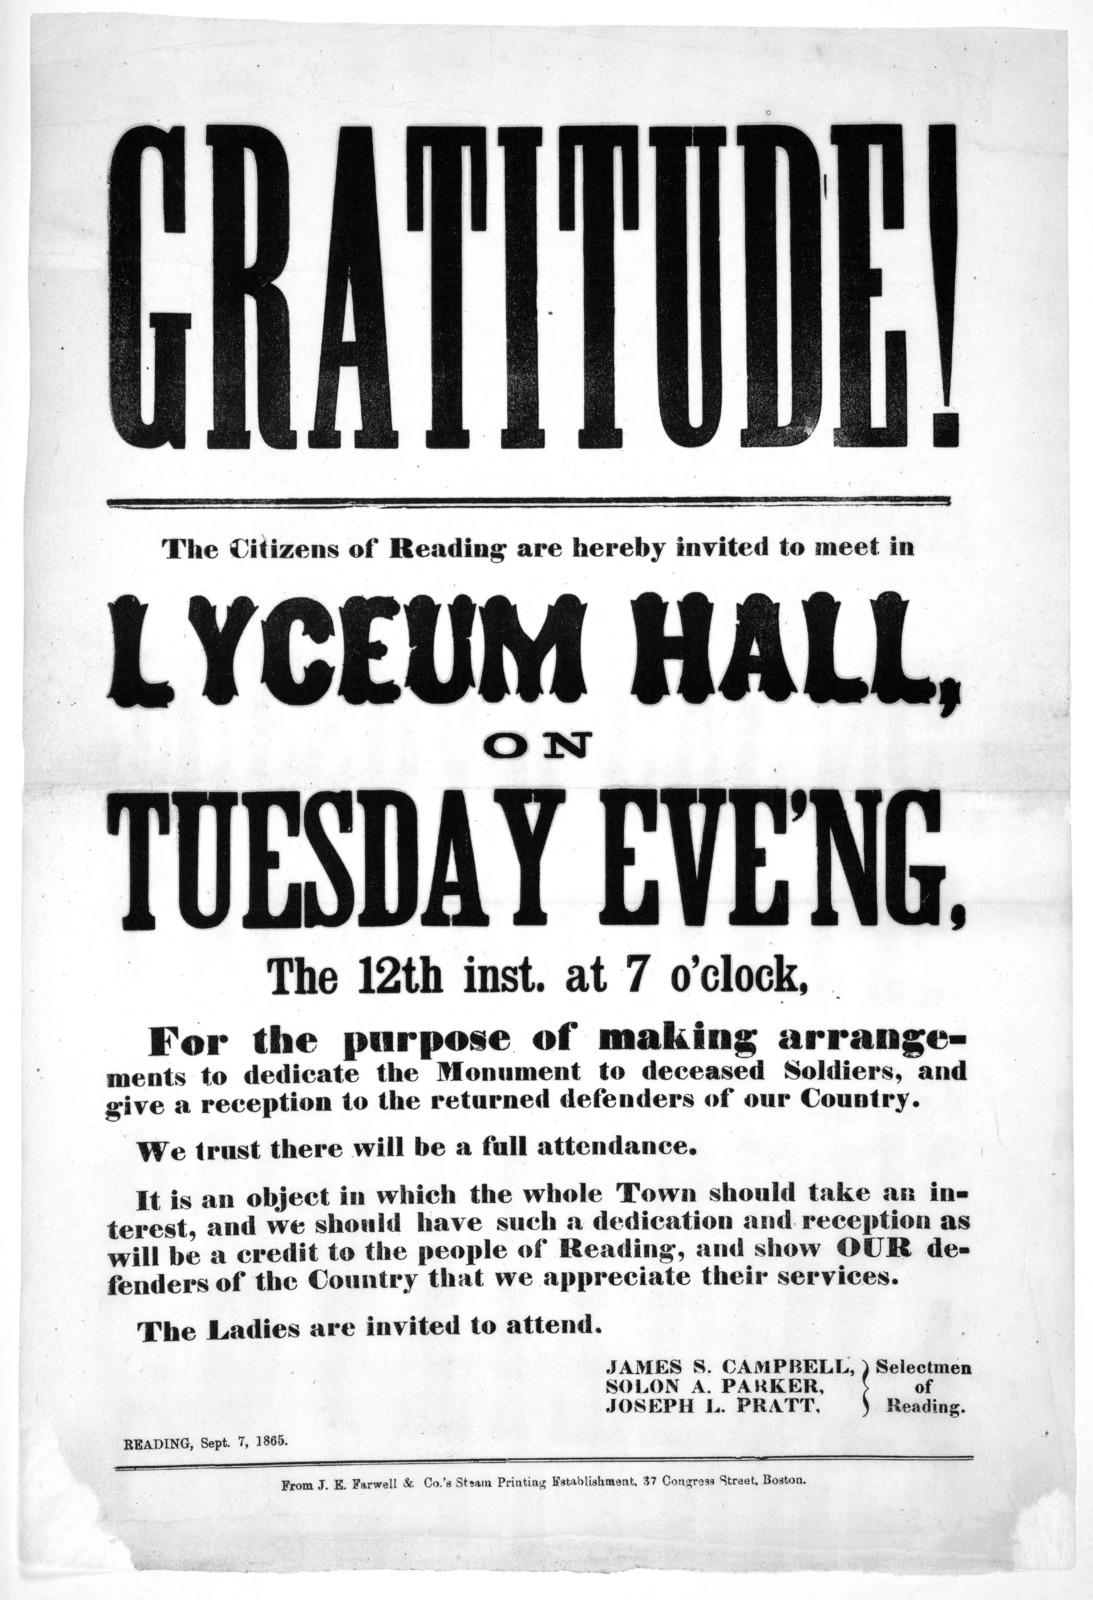 Gratitude! The citizens of Reading are hereby invited to meet in Lyceum Hall, on Tuesday evening, the 12th inst. at 7 o'clock, for the purpose of making arrangements to dedicate the monument to deceased soldiers ... Selectmen of Reading. Reading